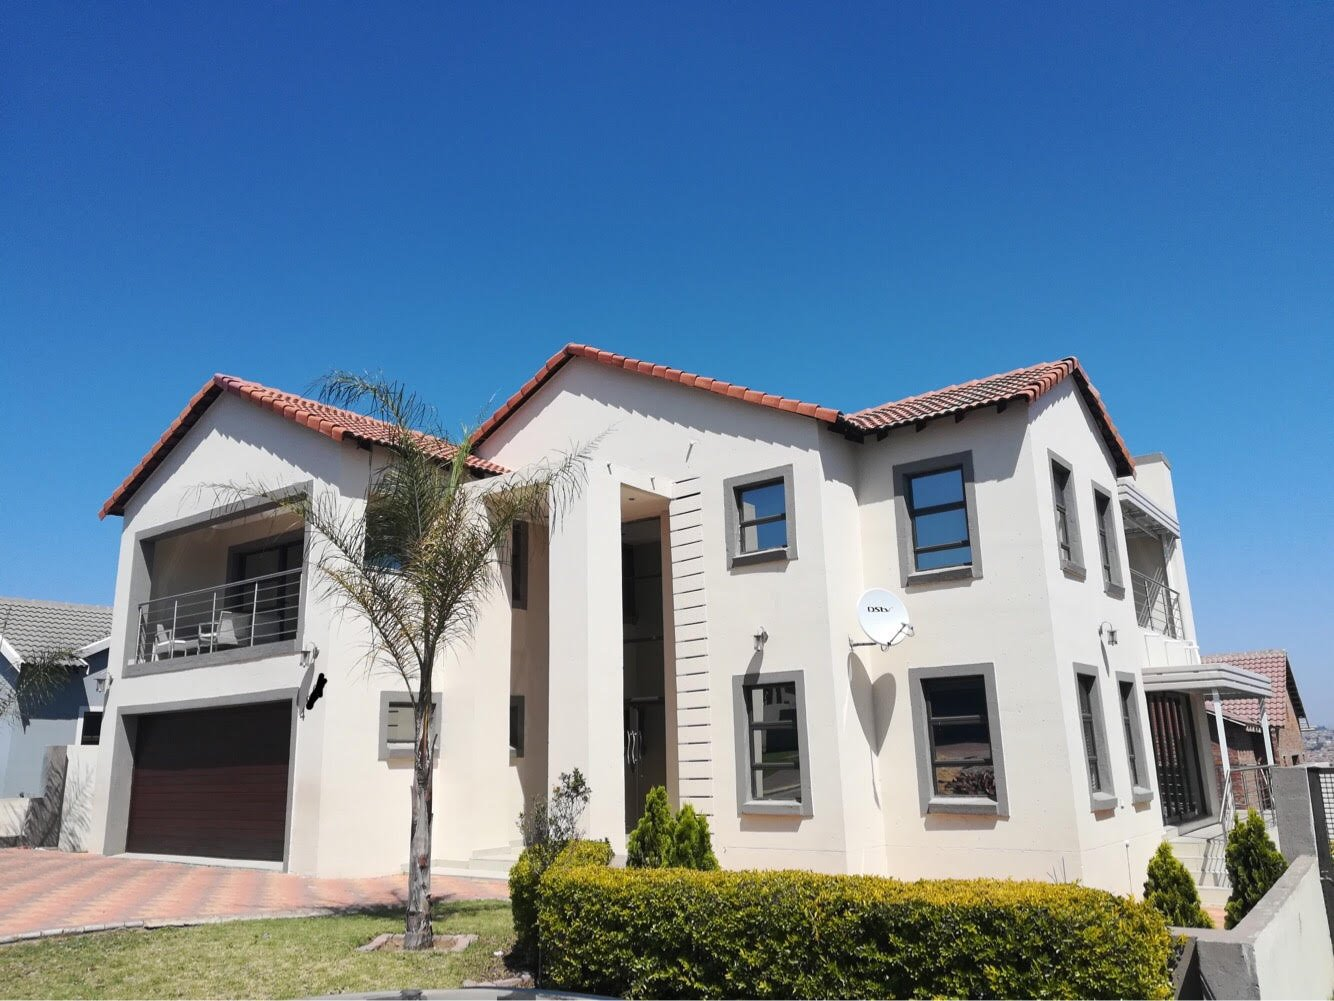 Centurion, Summerfields Estate Property  | Houses For Sale Summerfields Estate, Summerfields Estate, House 5 bedrooms property for sale Price:2,800,000